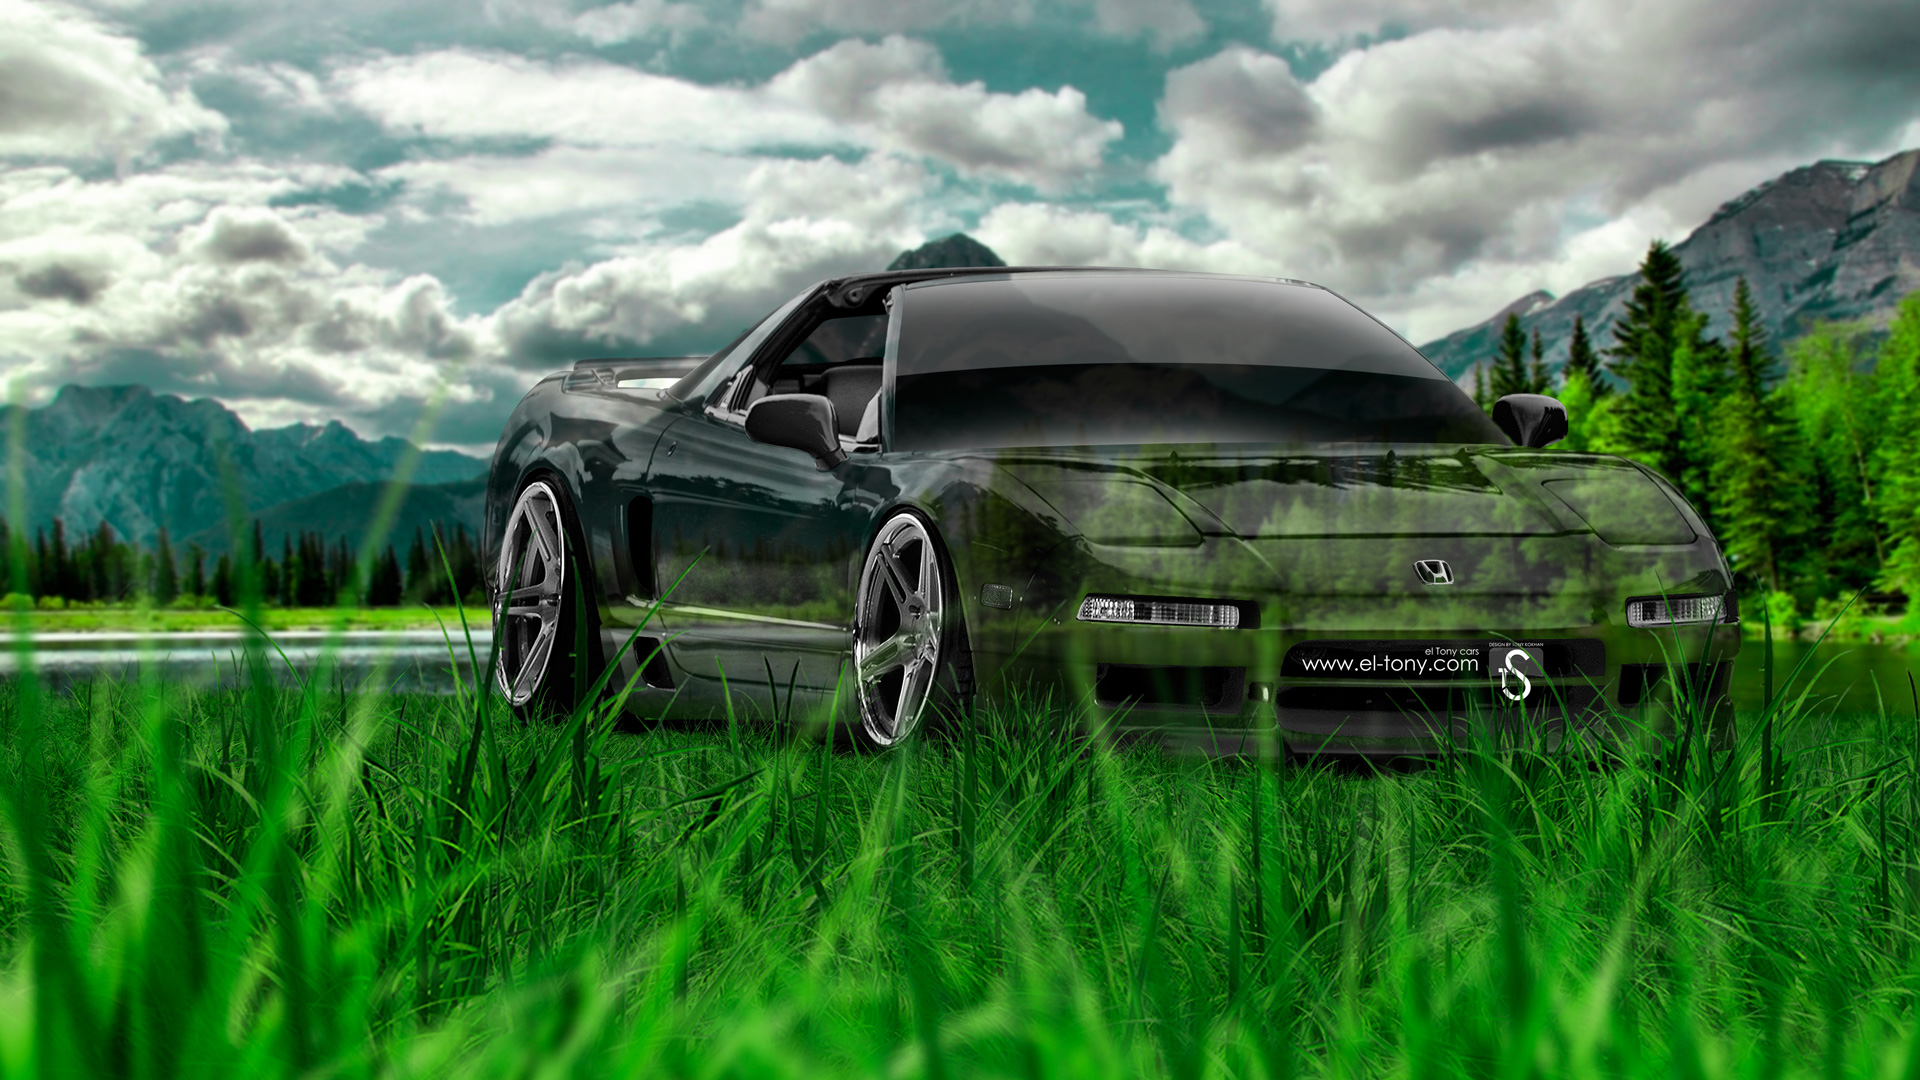 Superieur Honda NSX JDM Crystal Nature Car 2014